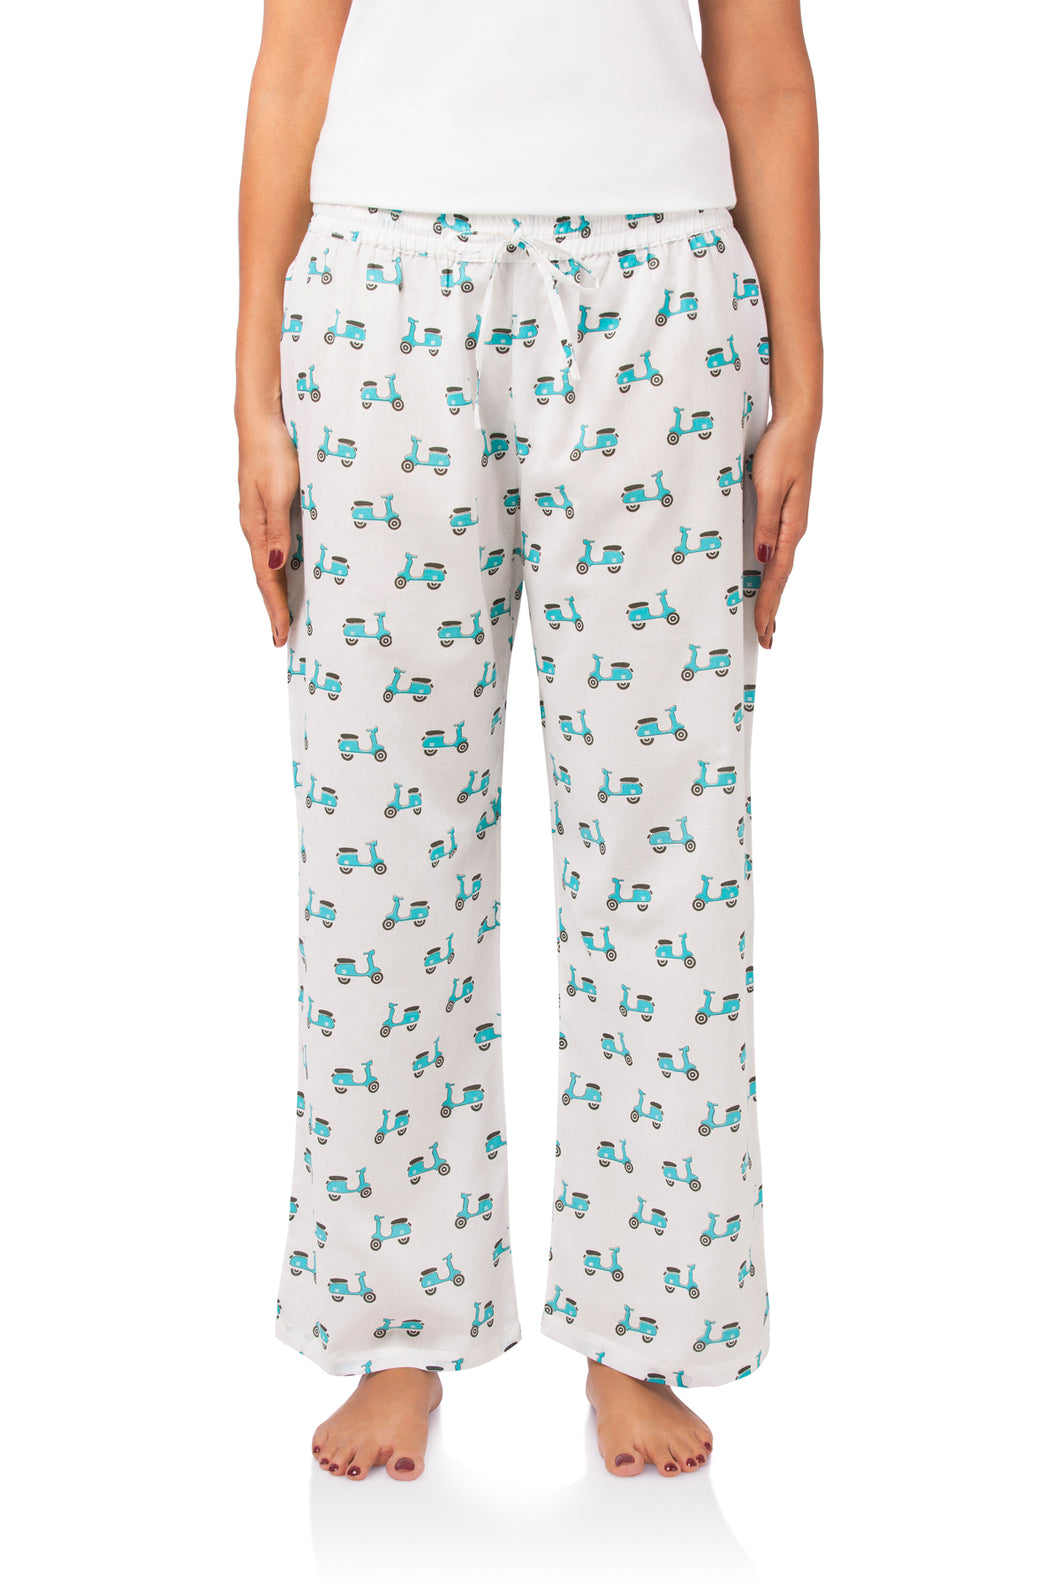 Scooter Lounge Pant